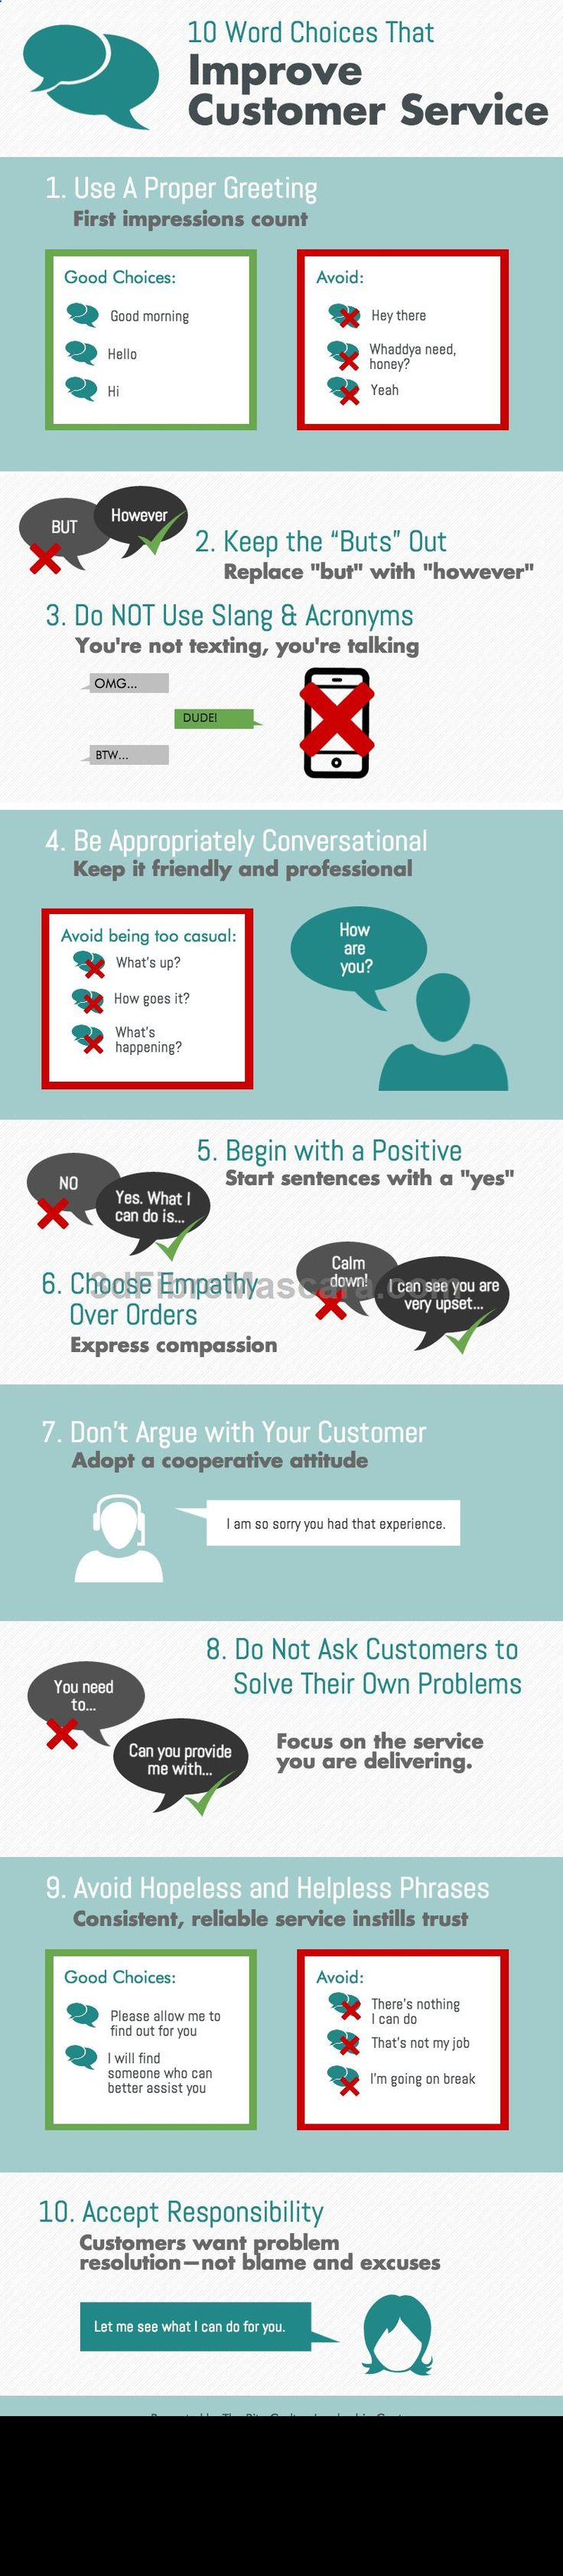 33 best gcro images on Pinterest   Communication, Tips and Business